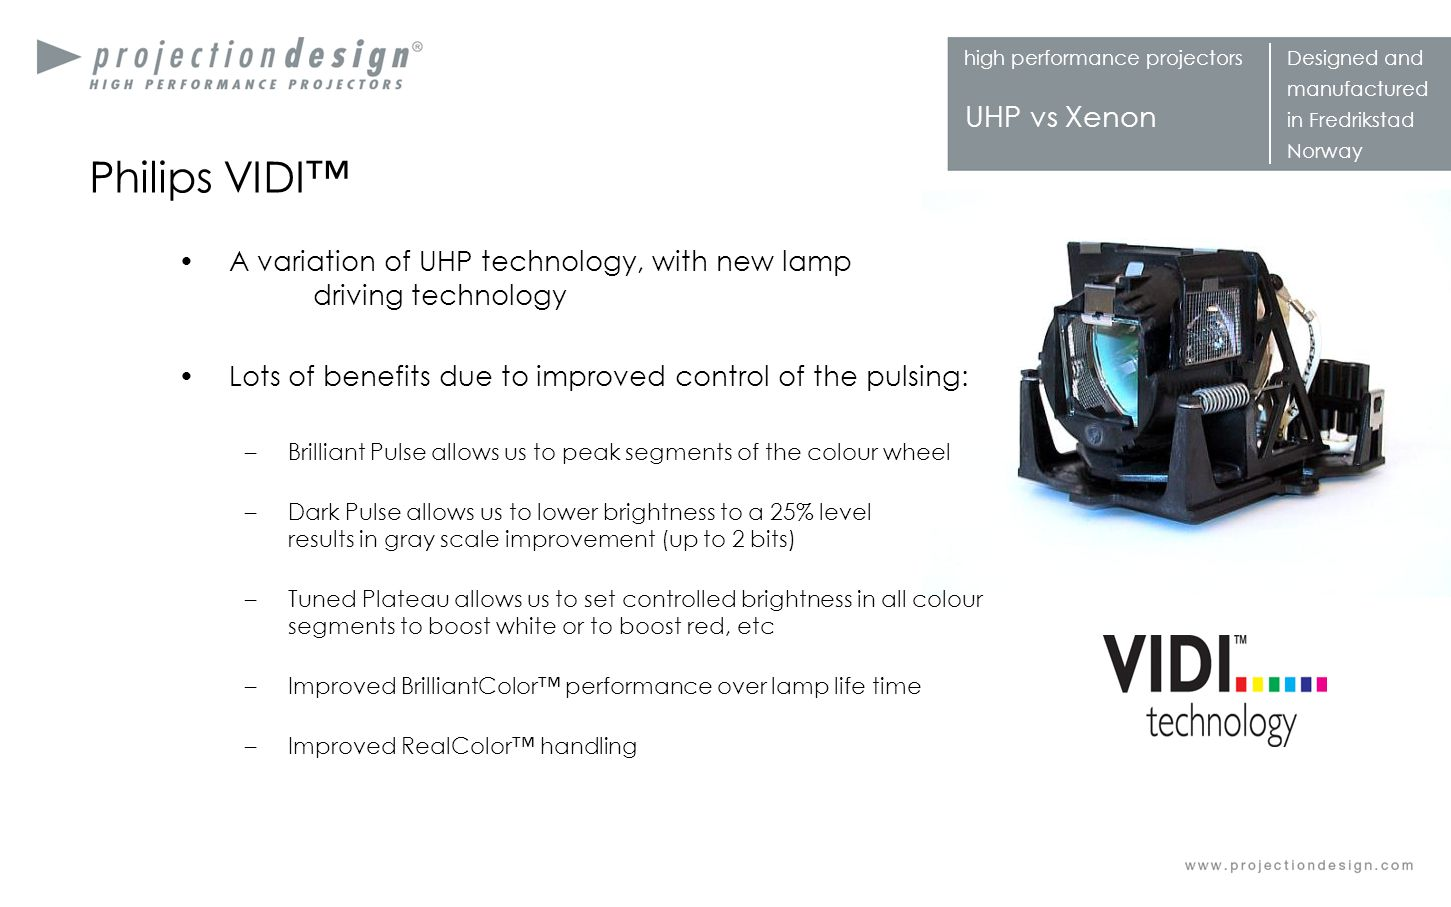 Philips VIDI™ A variation of UHP technology, with new lamp driving technology. Lots of benefits due to improved control of the pulsing: